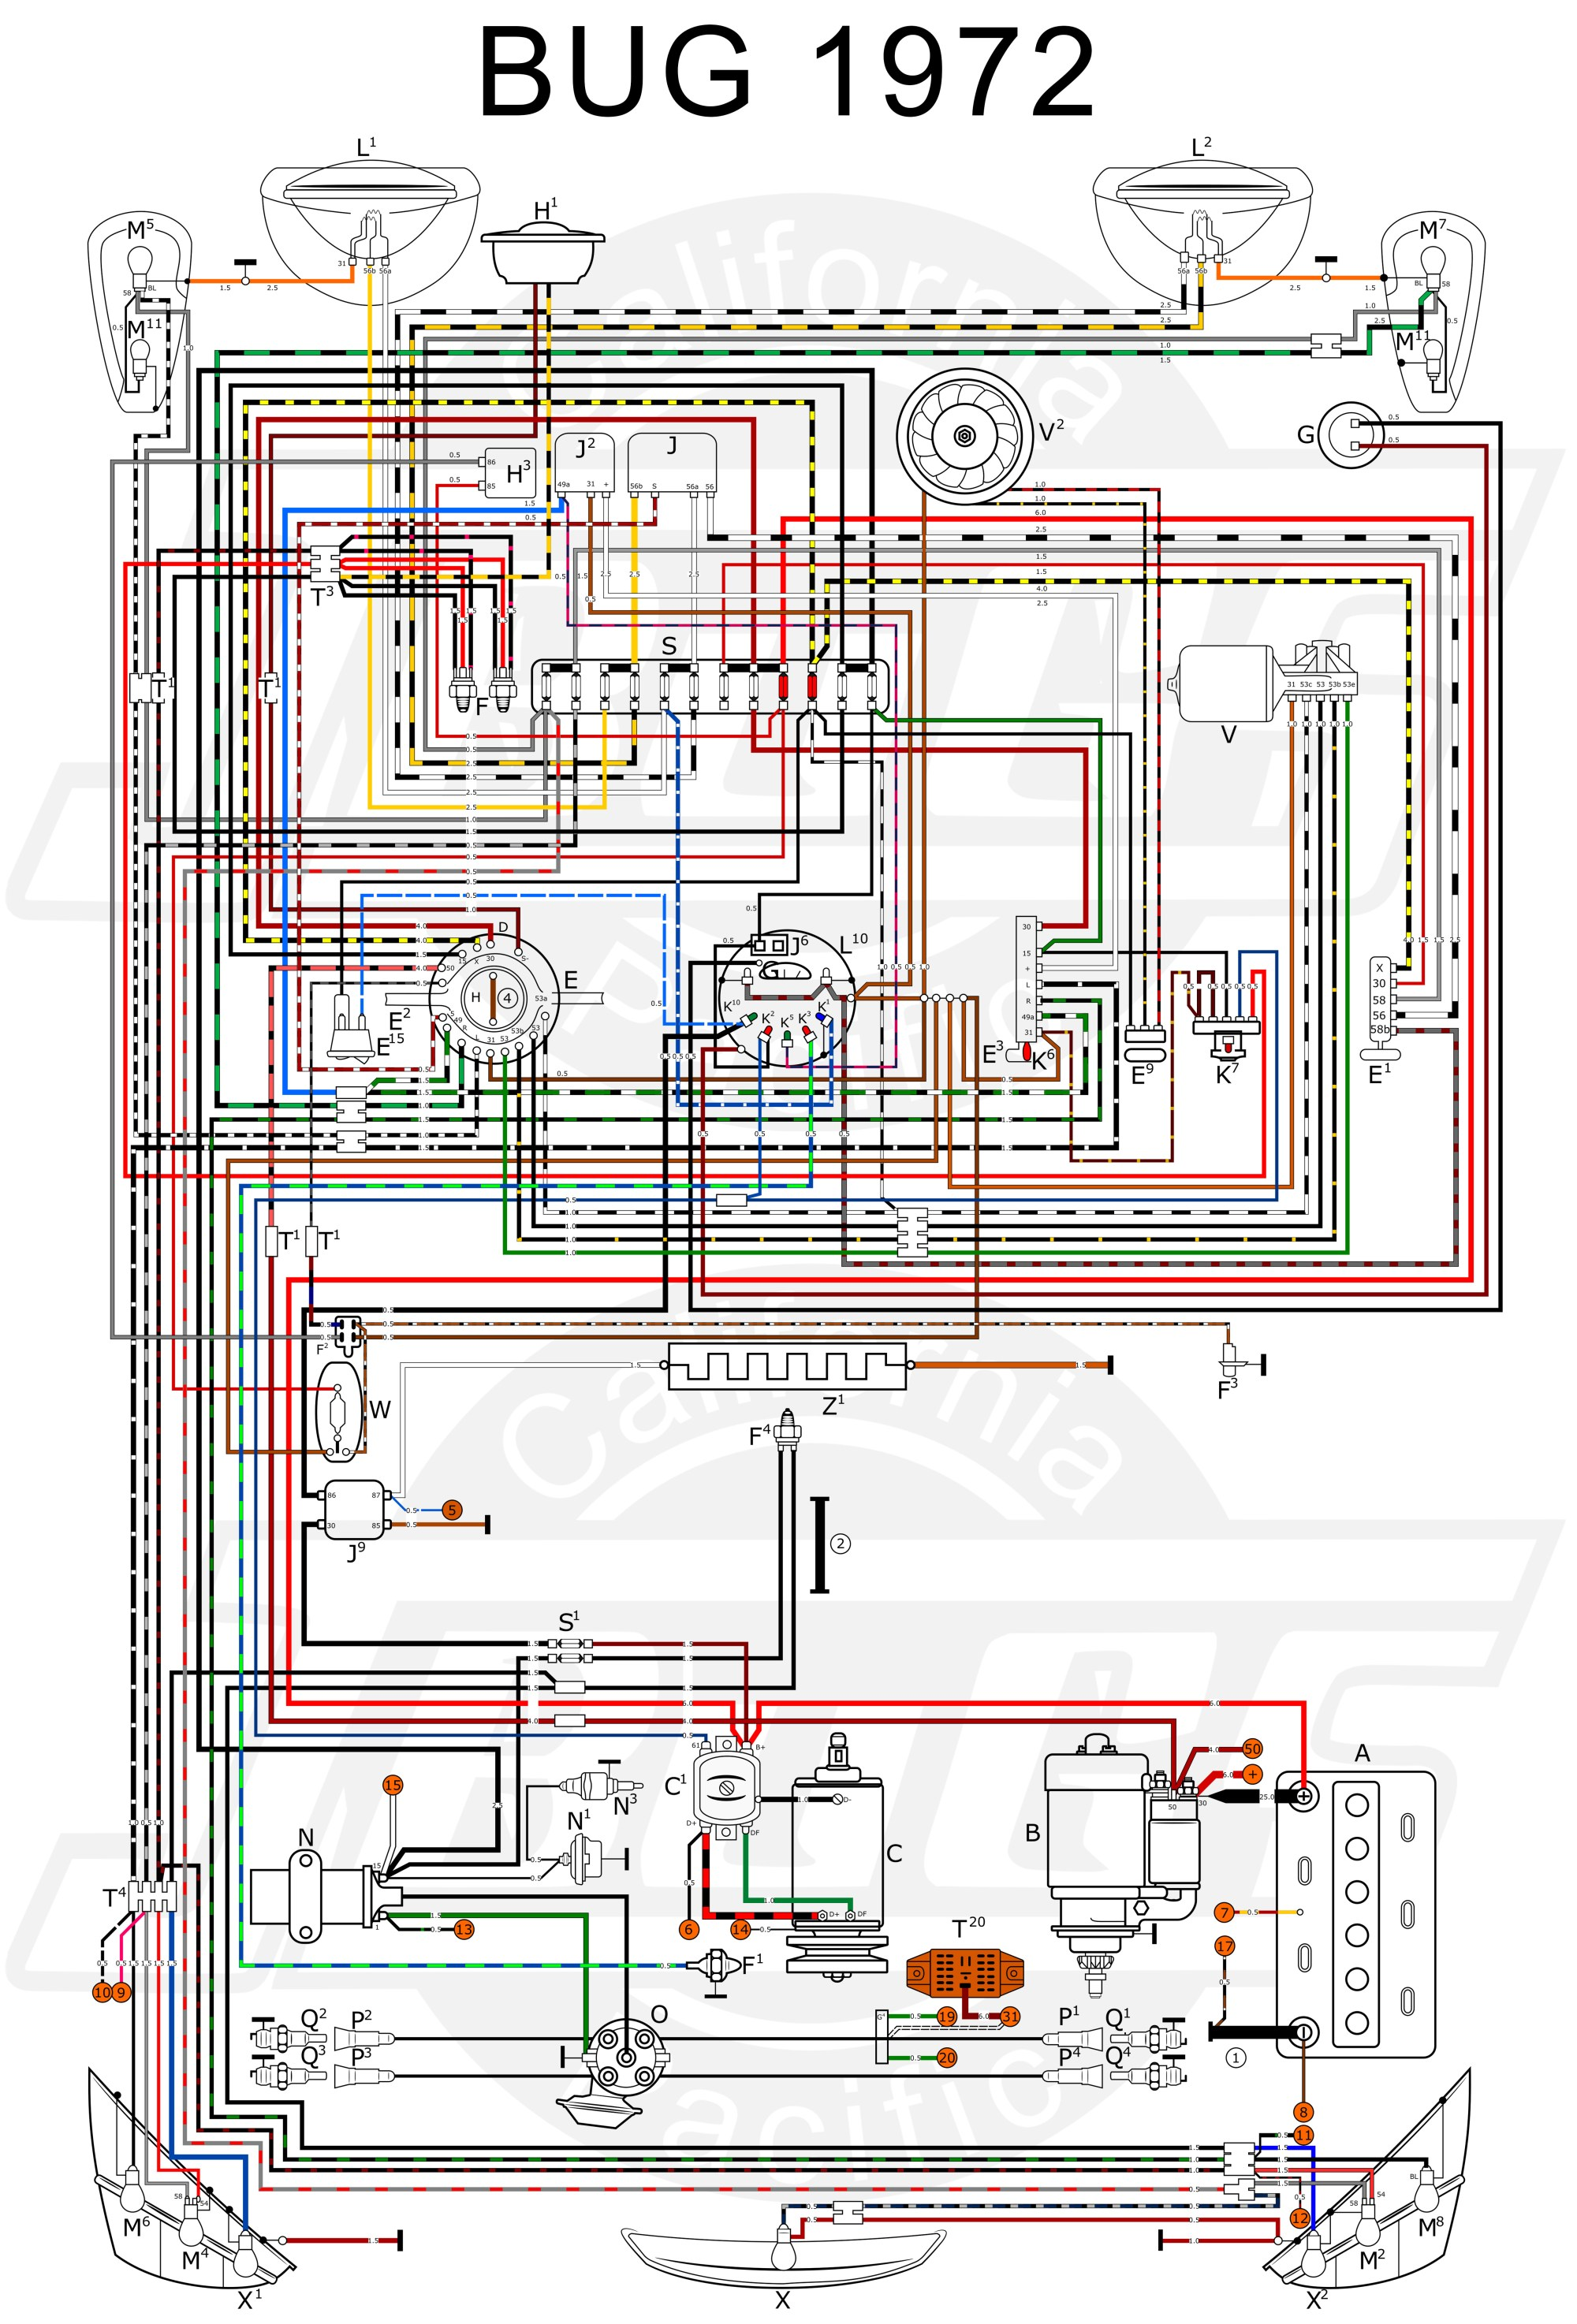 hight resolution of 1972 vw beetle wire schematic wiring diagram name 1972 vw beetle alternator wiring diagram 1972 vw alternator wiring diagram